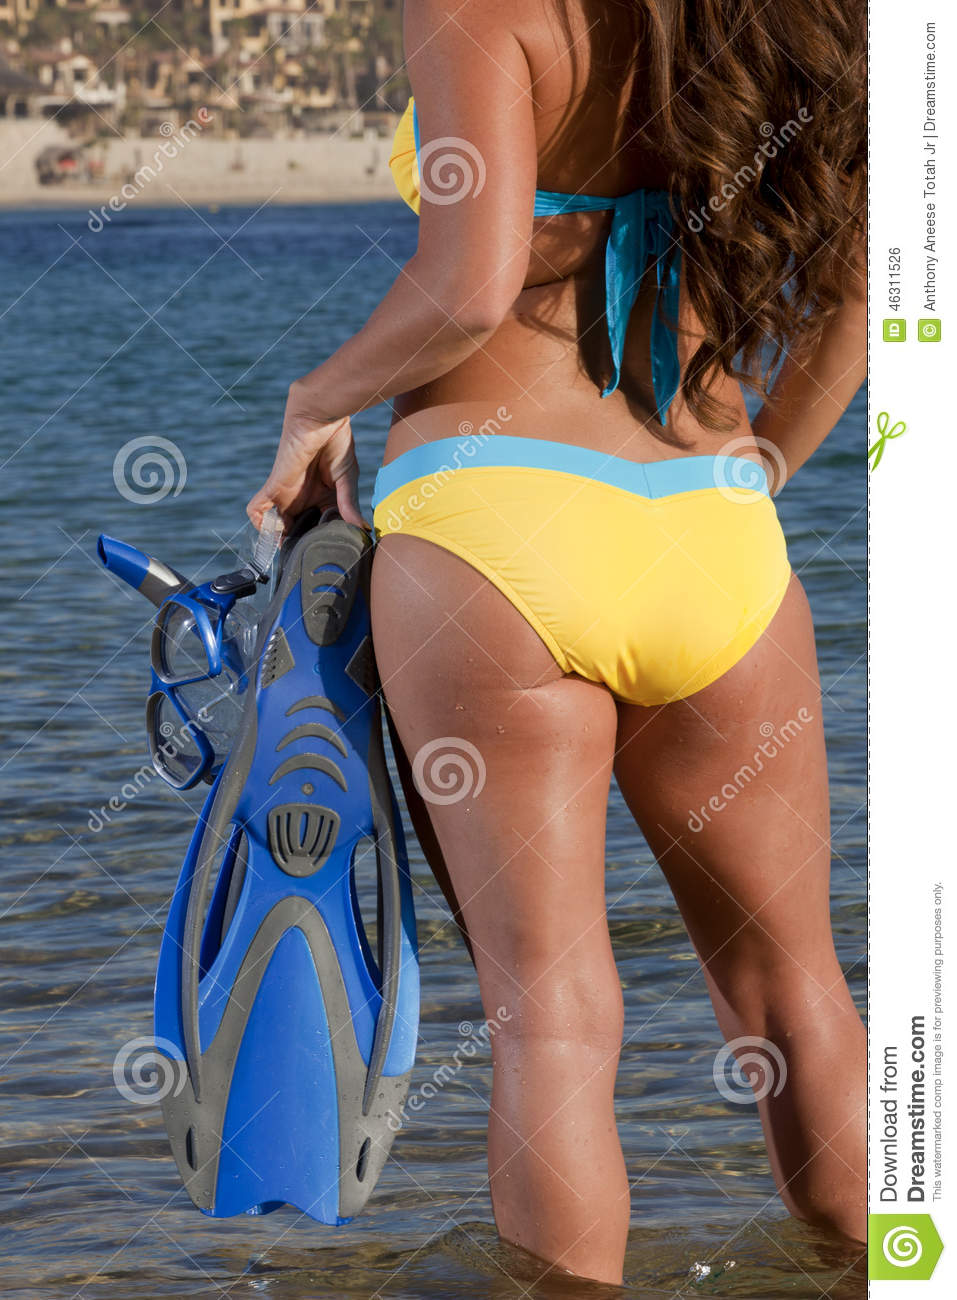 Woman getting ready to go snorkeling